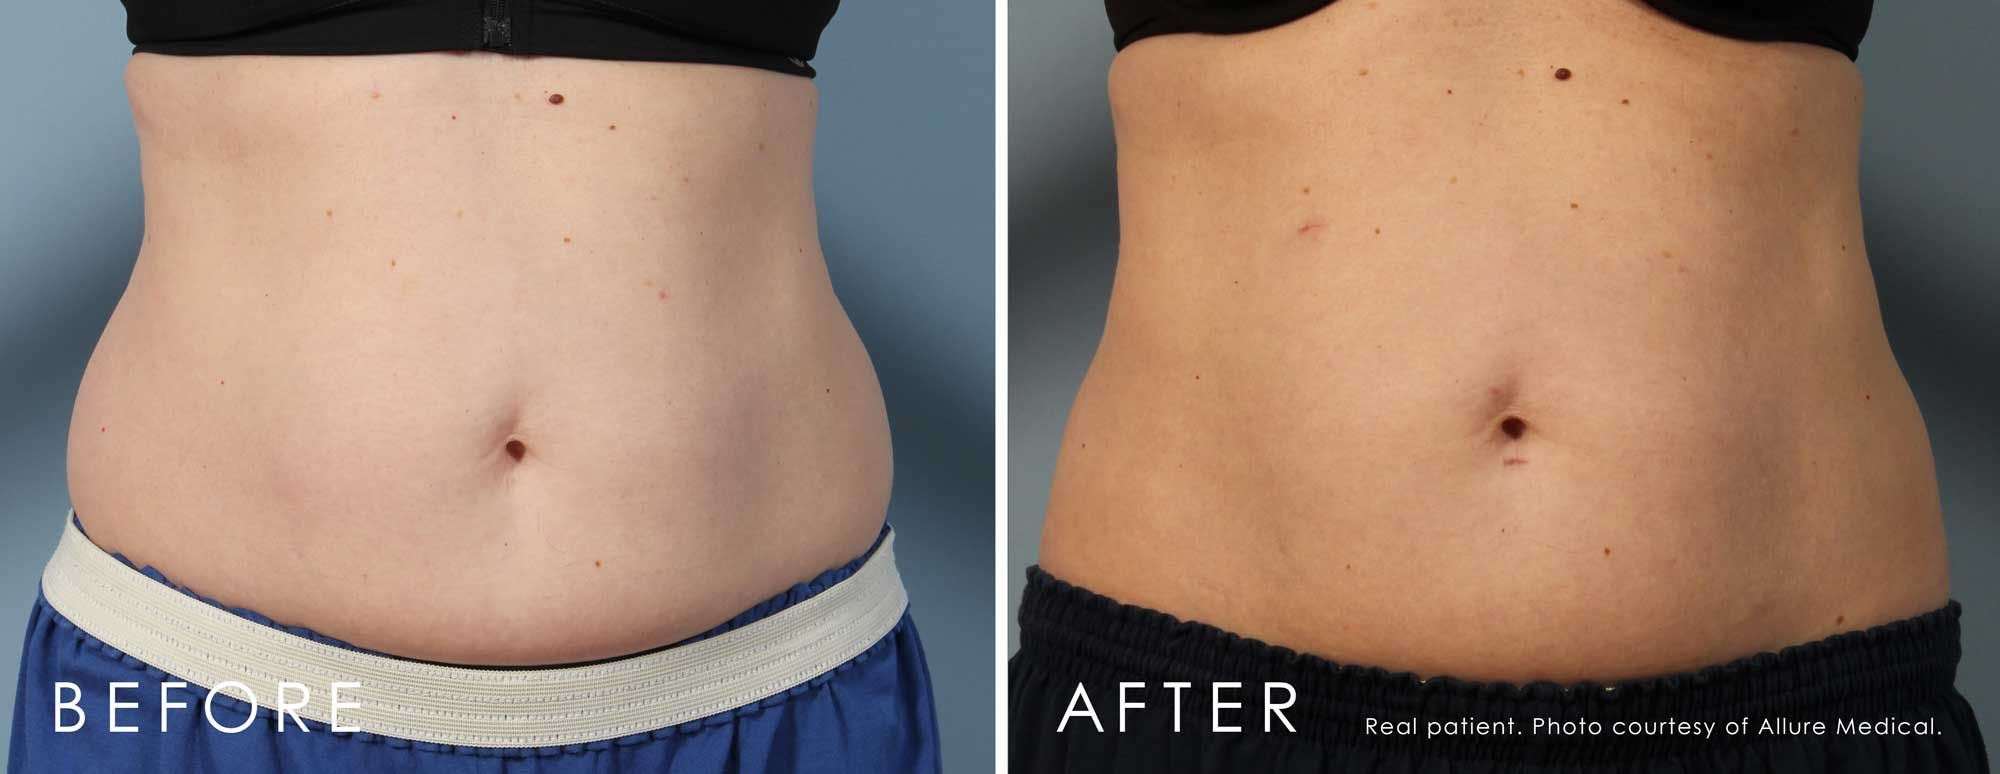 Before and After CoolSculpting® treatment #2